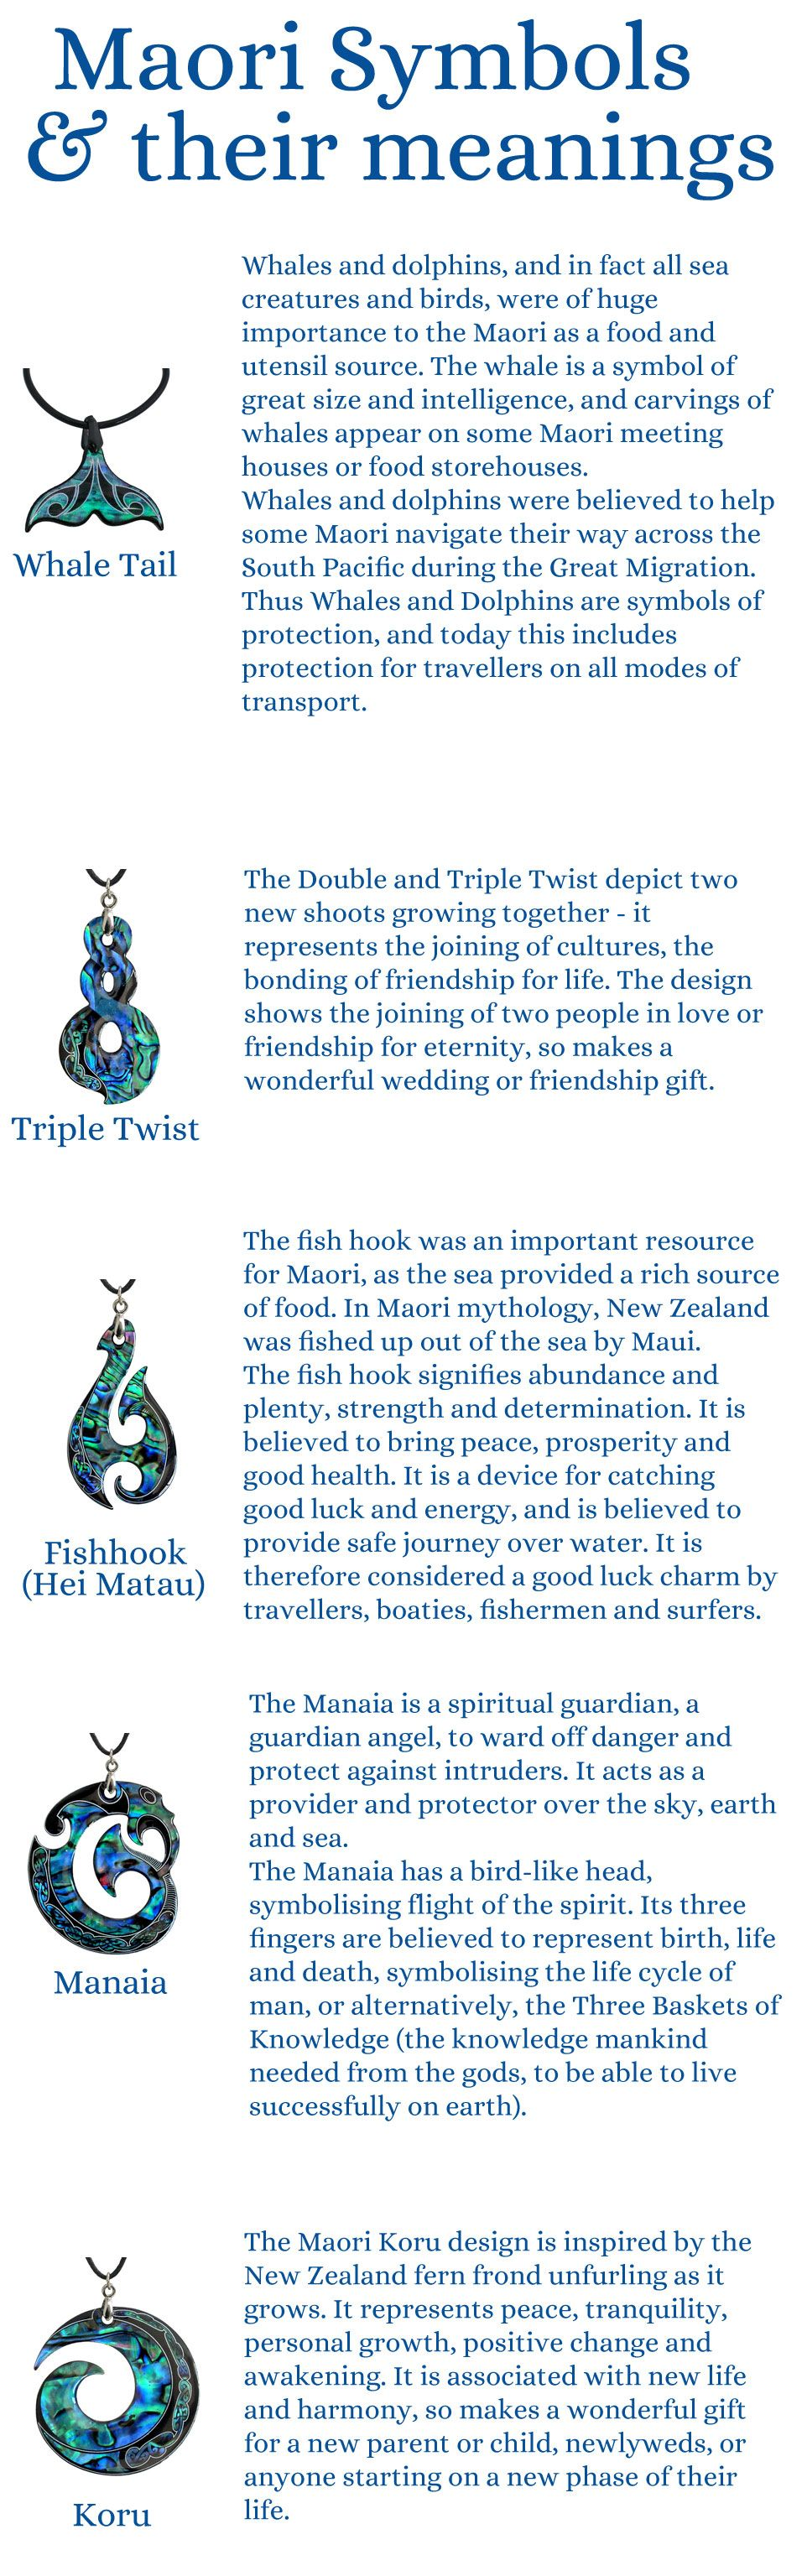 Pin By Ali Espie On Maori Symbols Pinterest Maori Symbols Maori